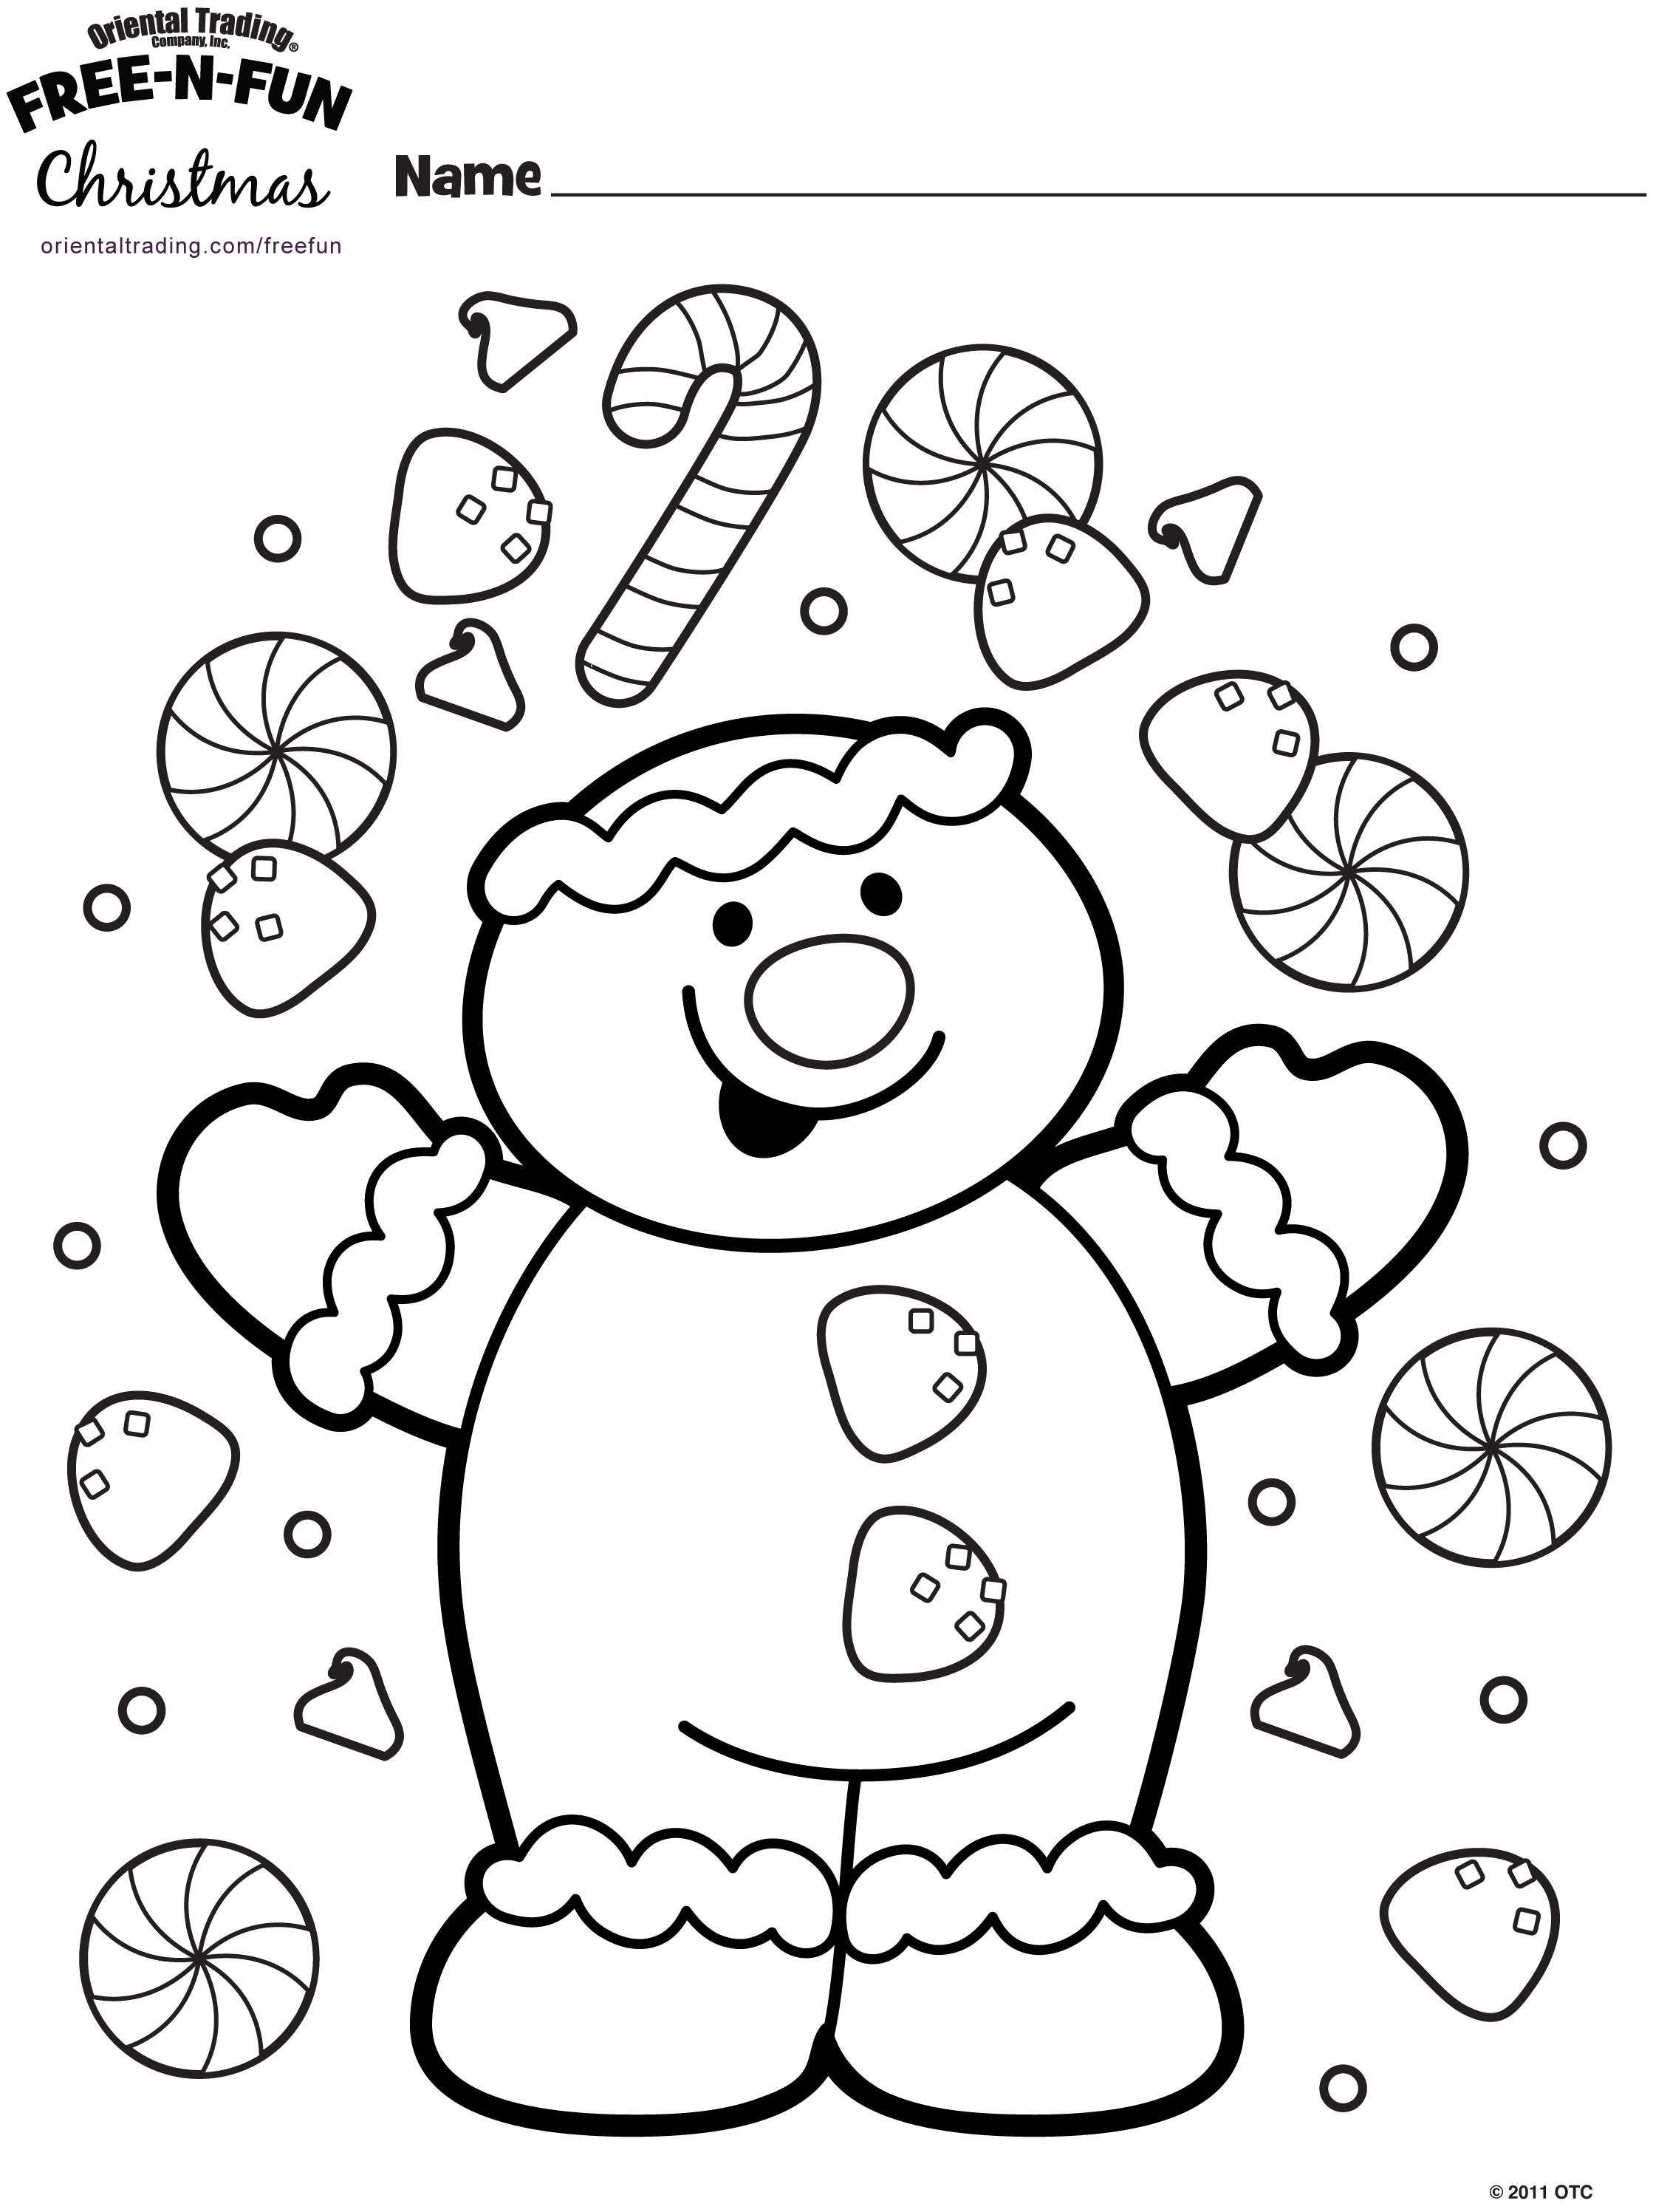 Christmas Coloring Pages Toy Sold Christmas Best Free